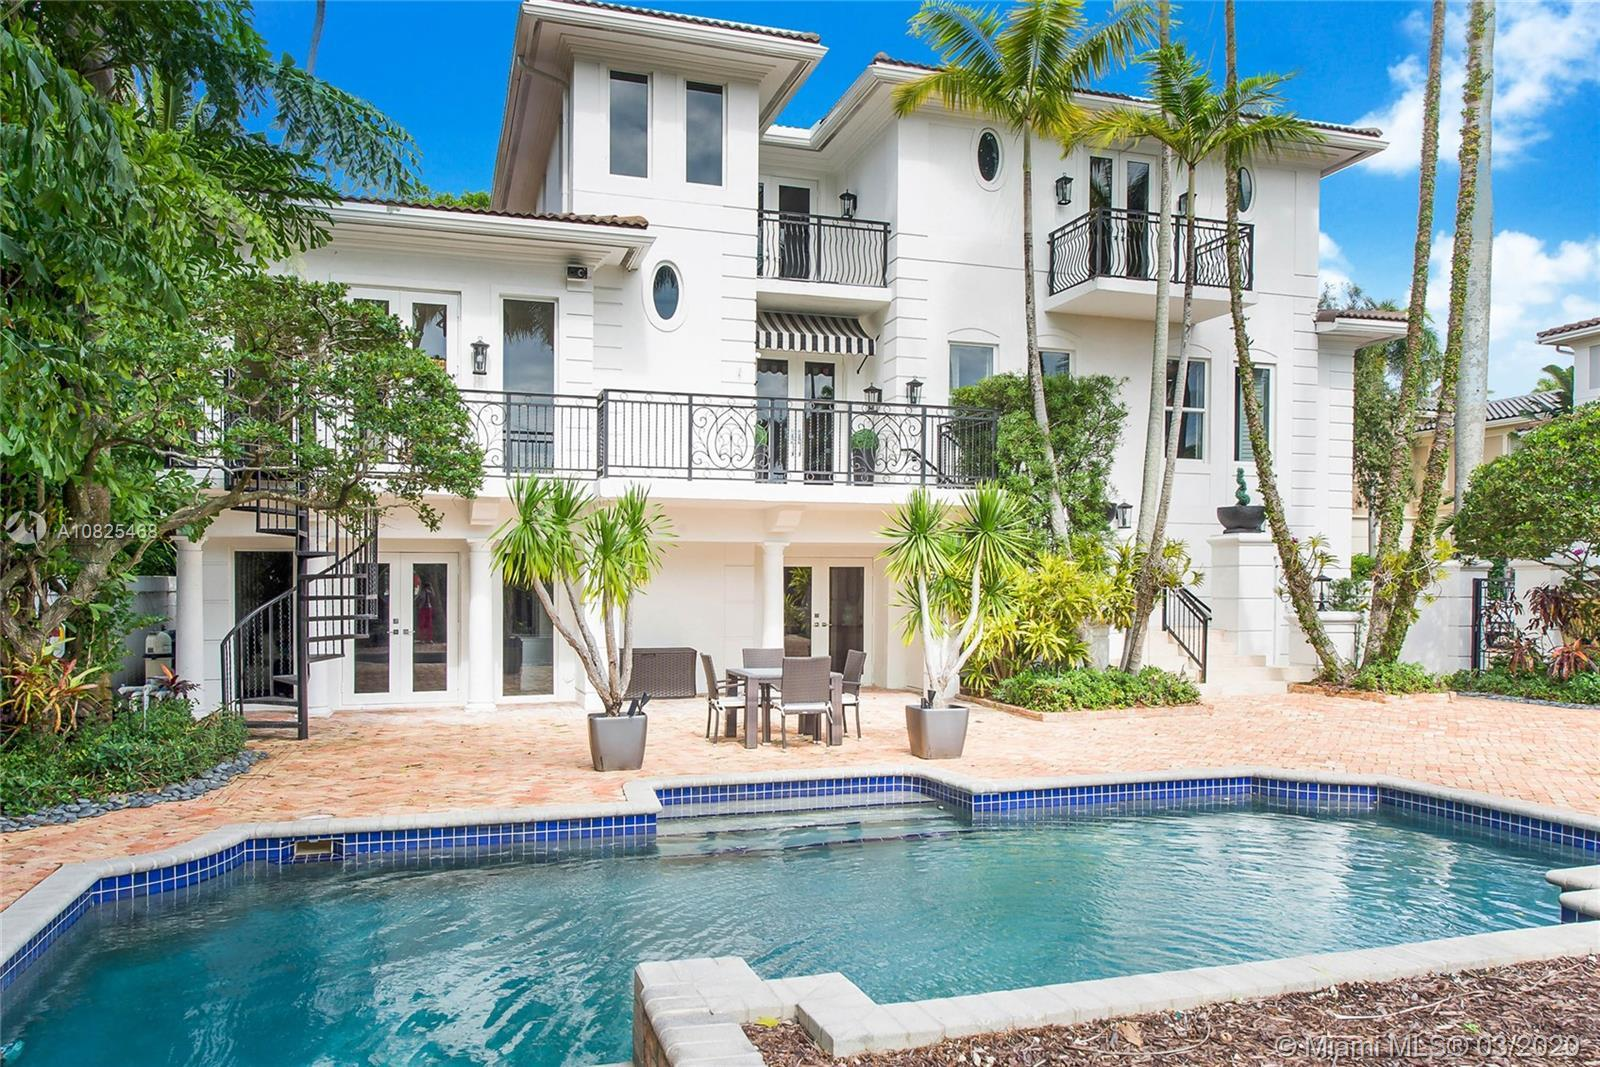 Beautiful remodeled home, in GATED community, Treasure Trove in Coconut Grove. Majestic surroundings